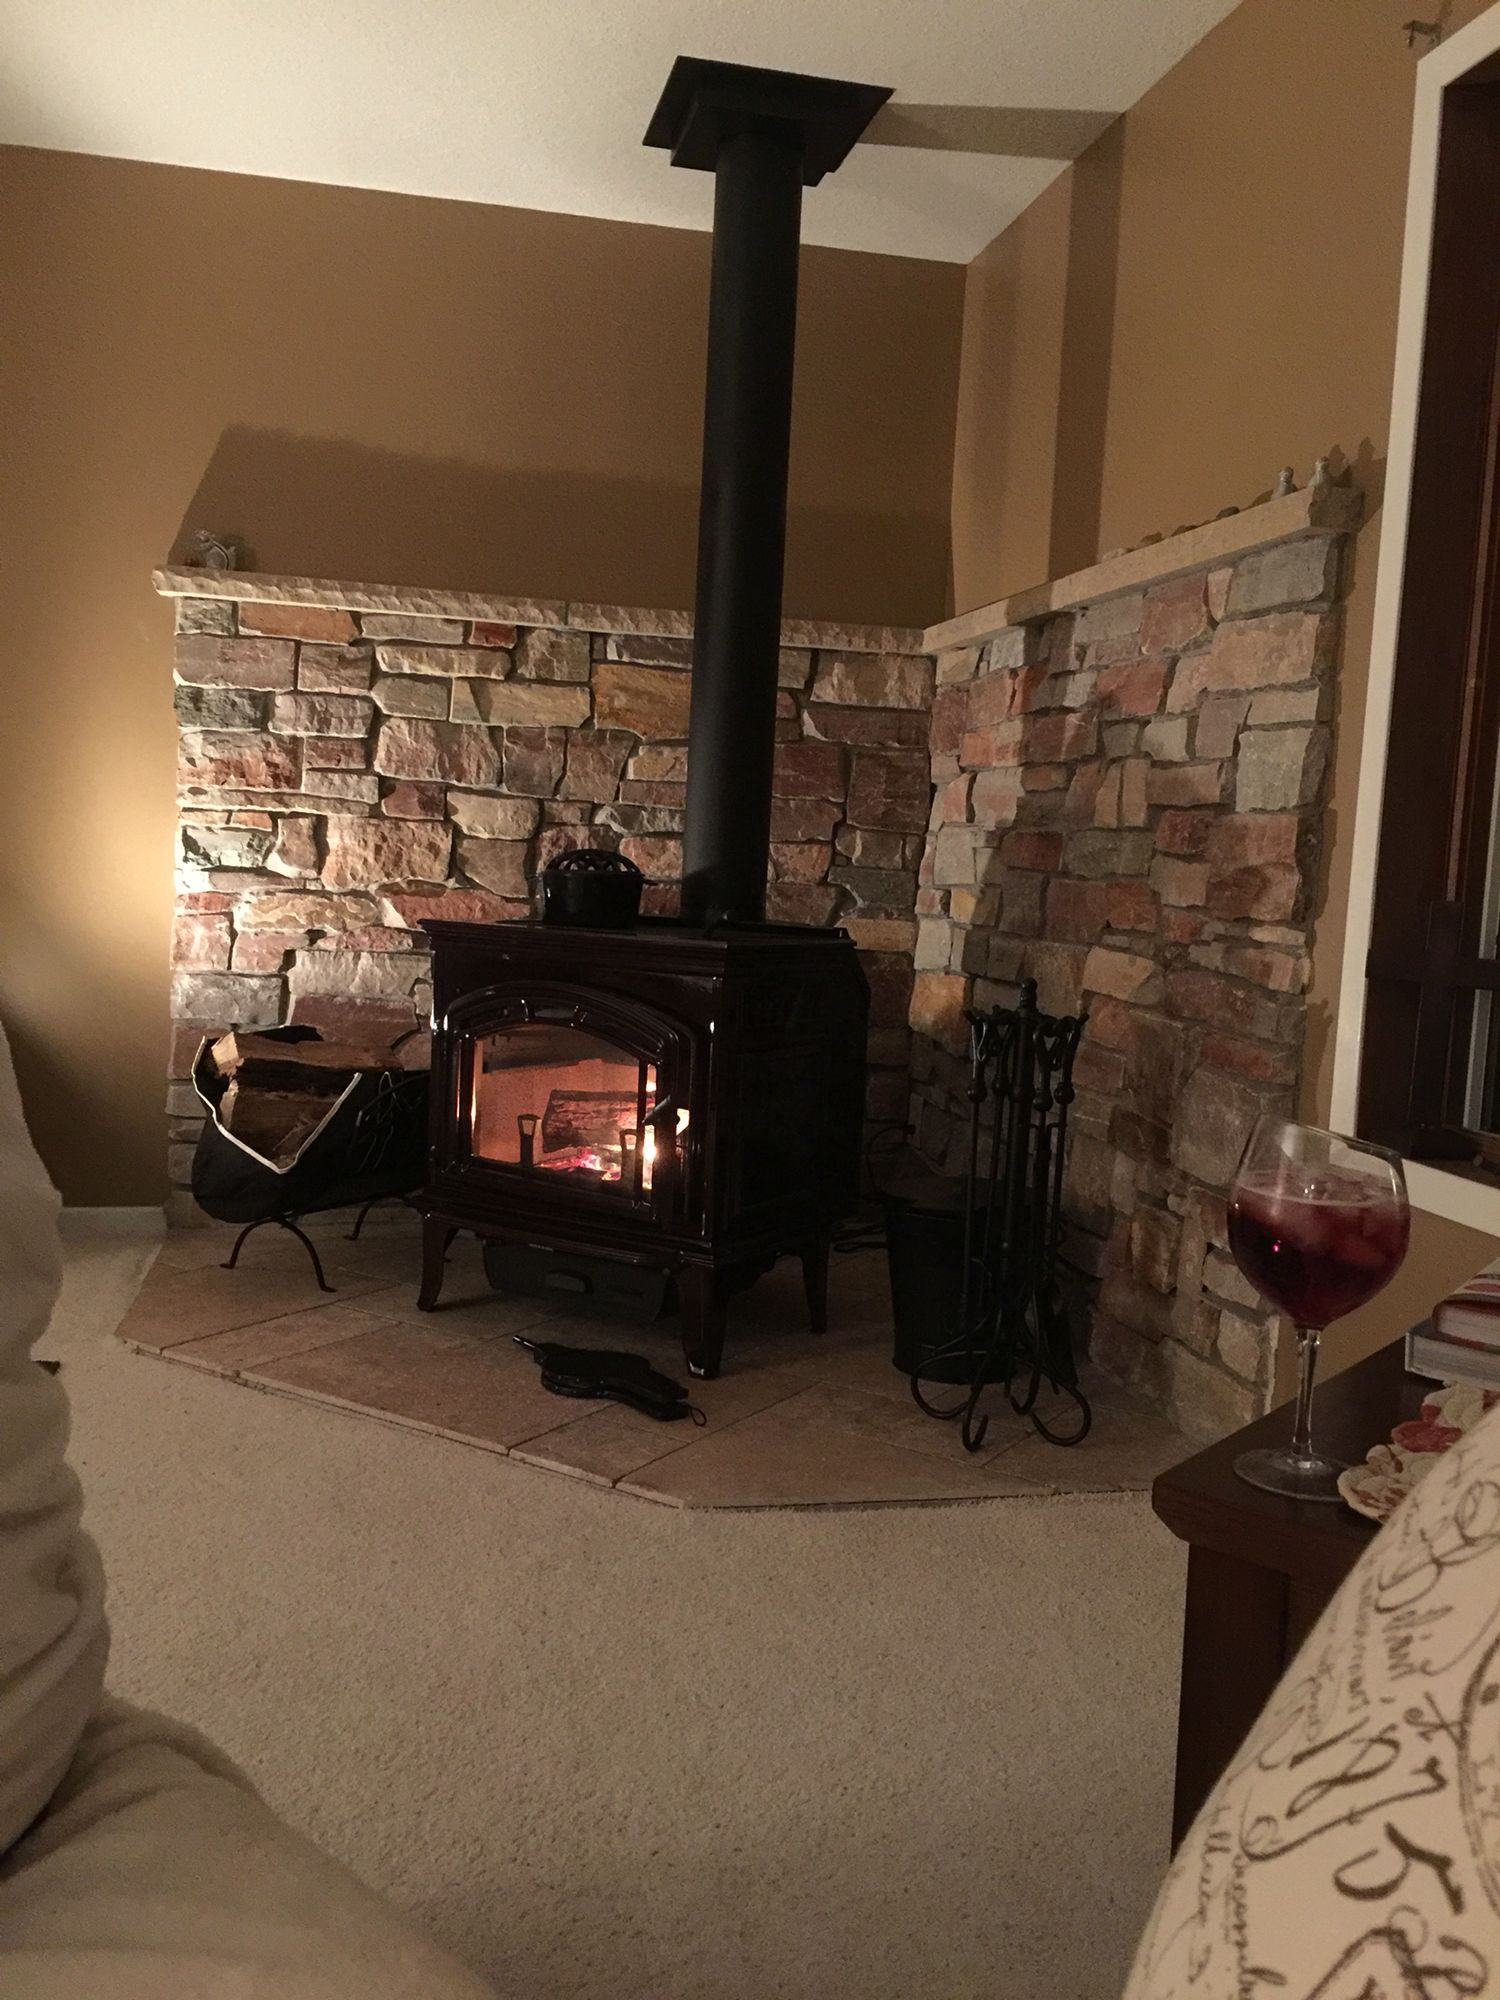 our new wood stove and rock wall will be doing the carpet to tile